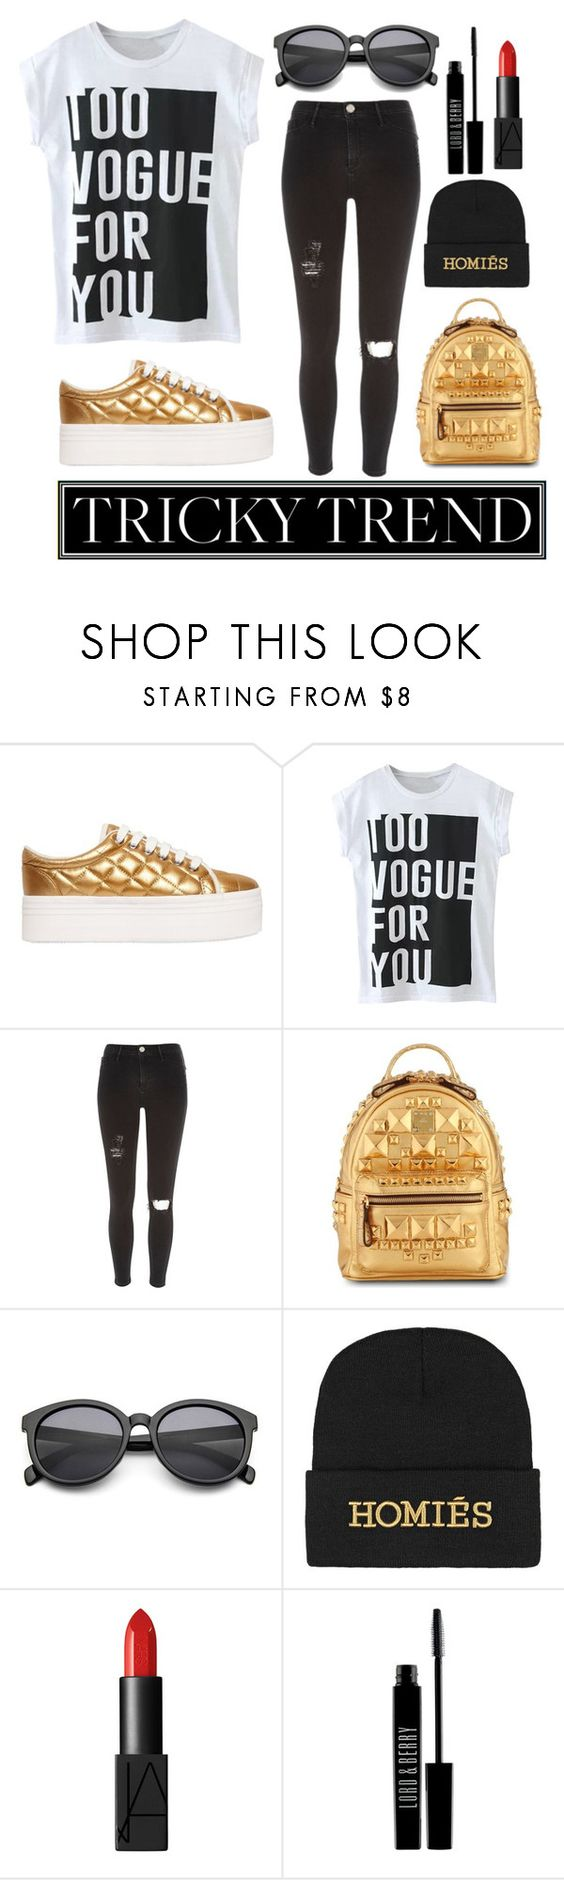 """Gold Vogue"" by ethenknowsfashion ❤ liked on Polyvore featuring Jeffrey Campbell, River Island, MCM, Brian Lichtenberg, NARS Cosmetics, Lord & Berry, TrickyTrend, vogue and platformsneakers"